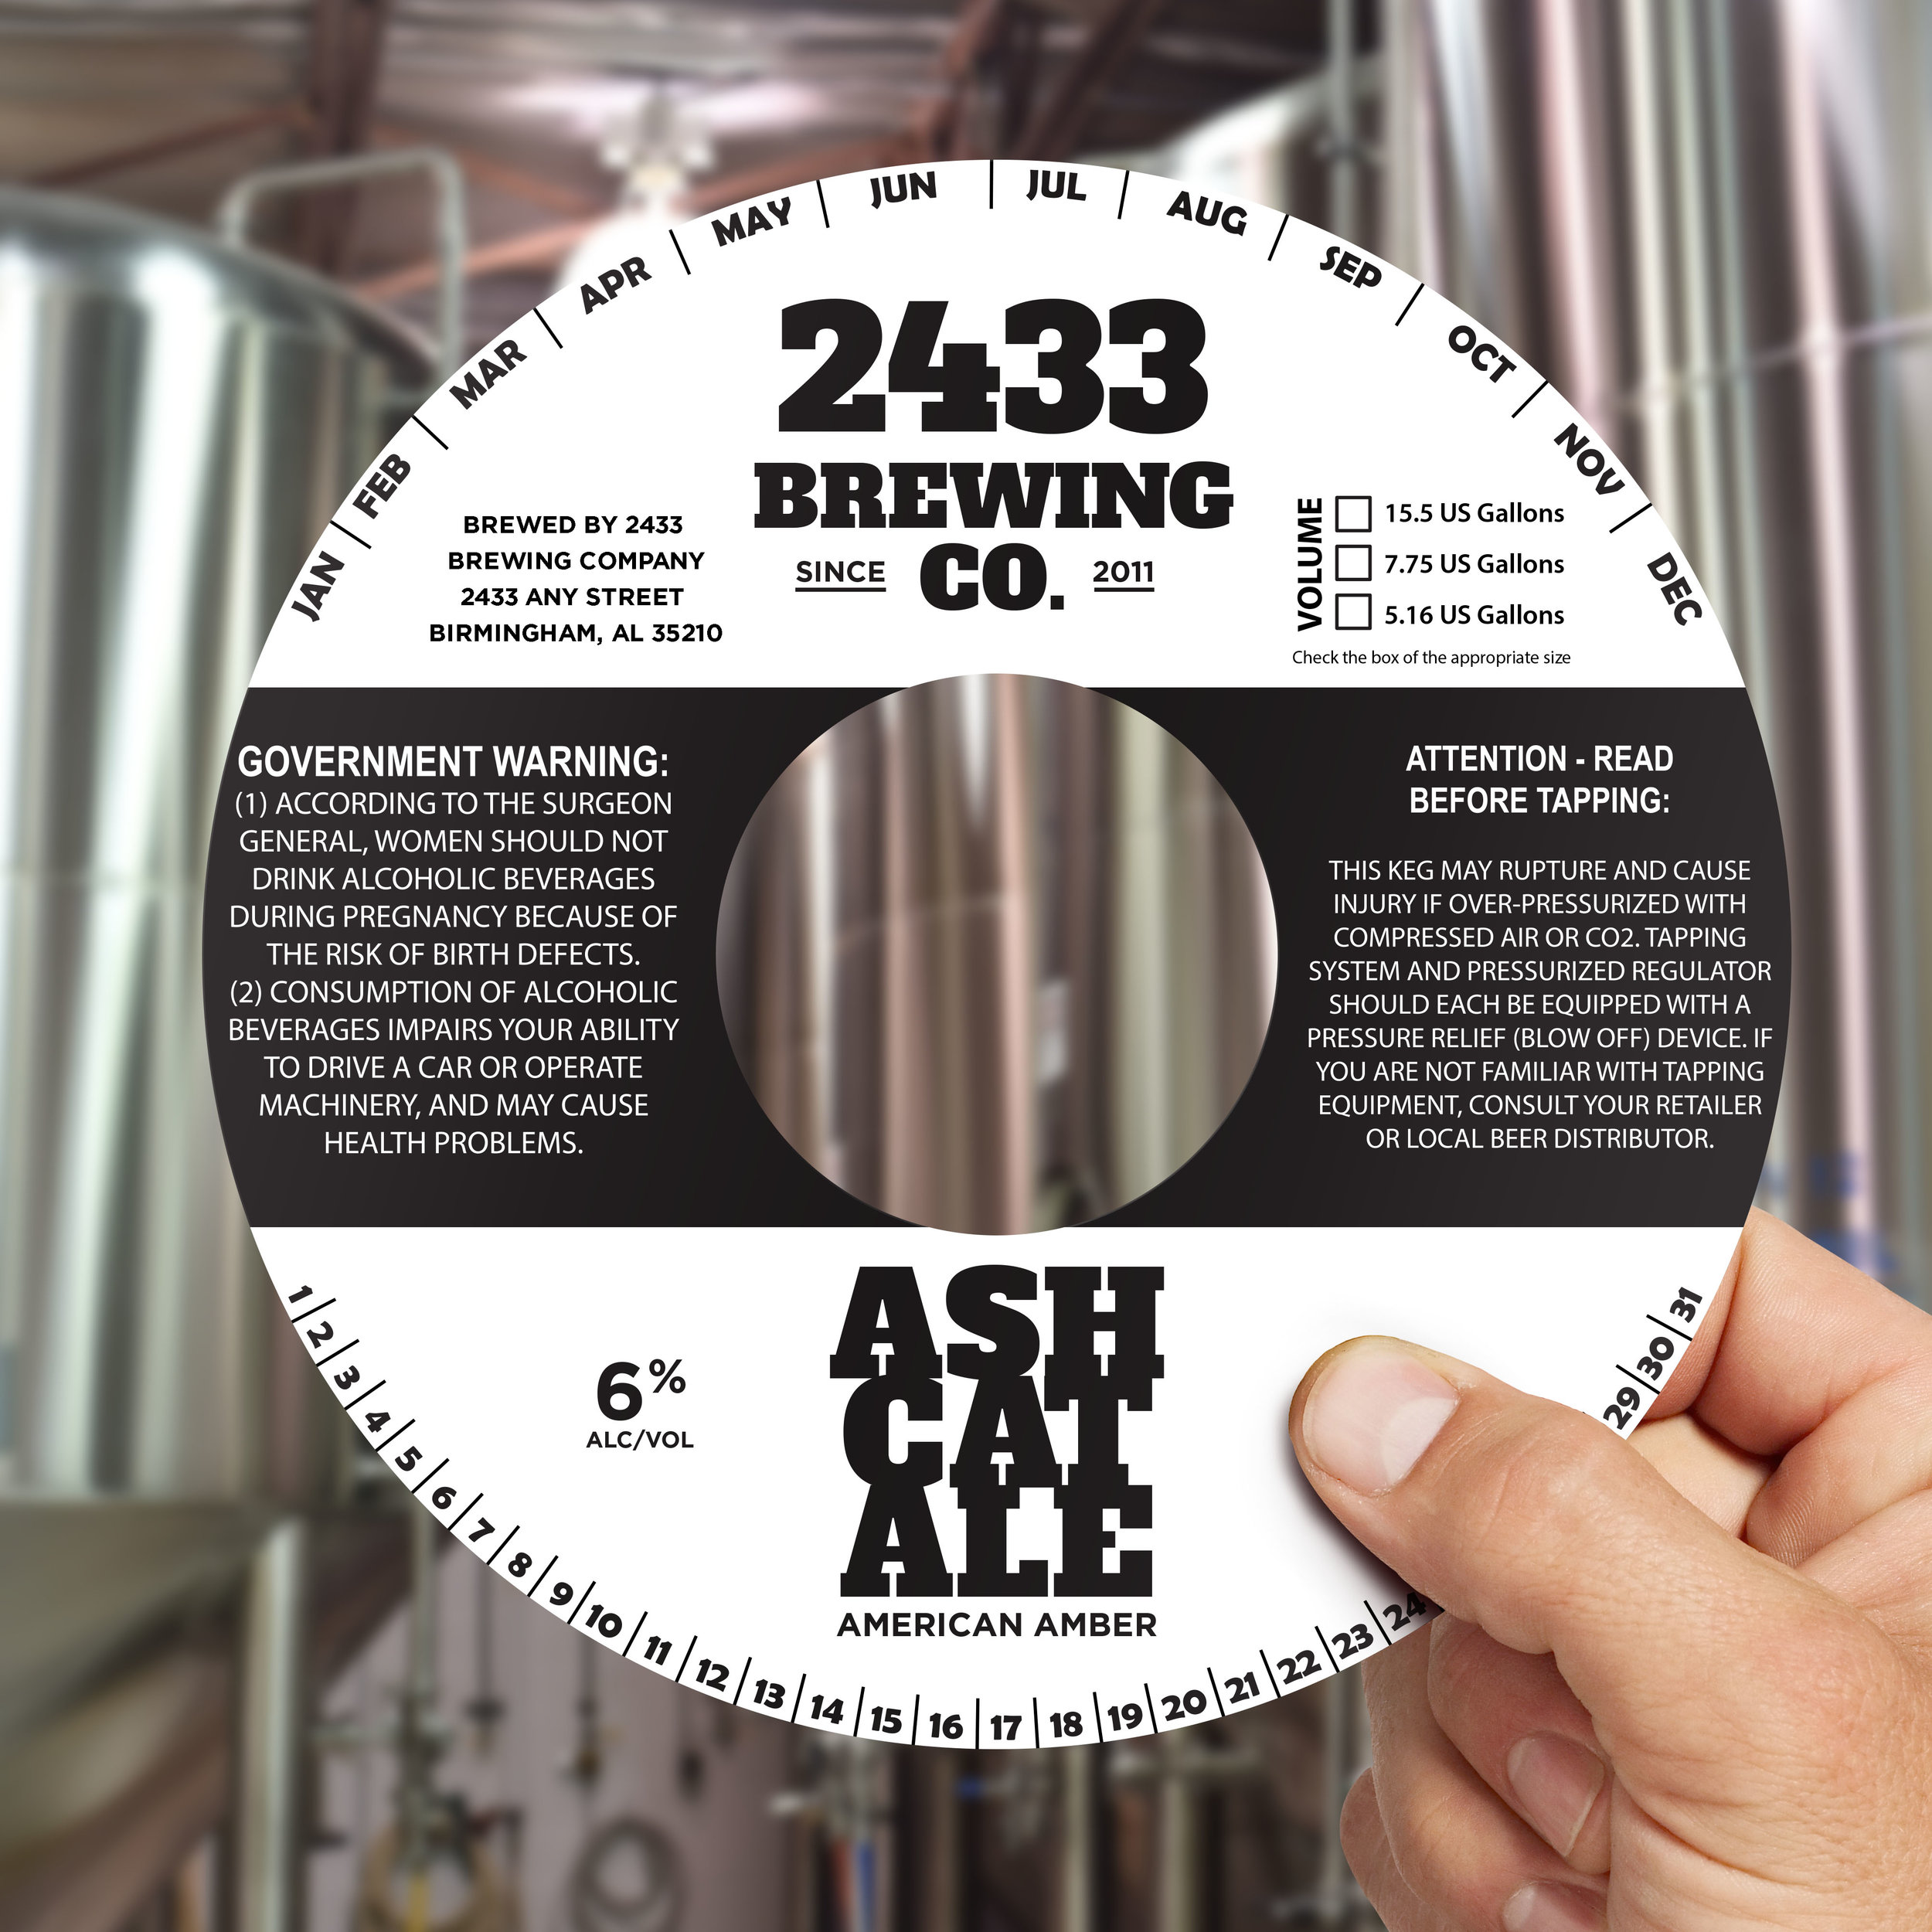 Craft Beer Print - We offer the print that you need for your operation, from keg collars to bottle, crowler, can and tap handle labels, wall/window/floor graphics and a wide variety of custom printed decals.